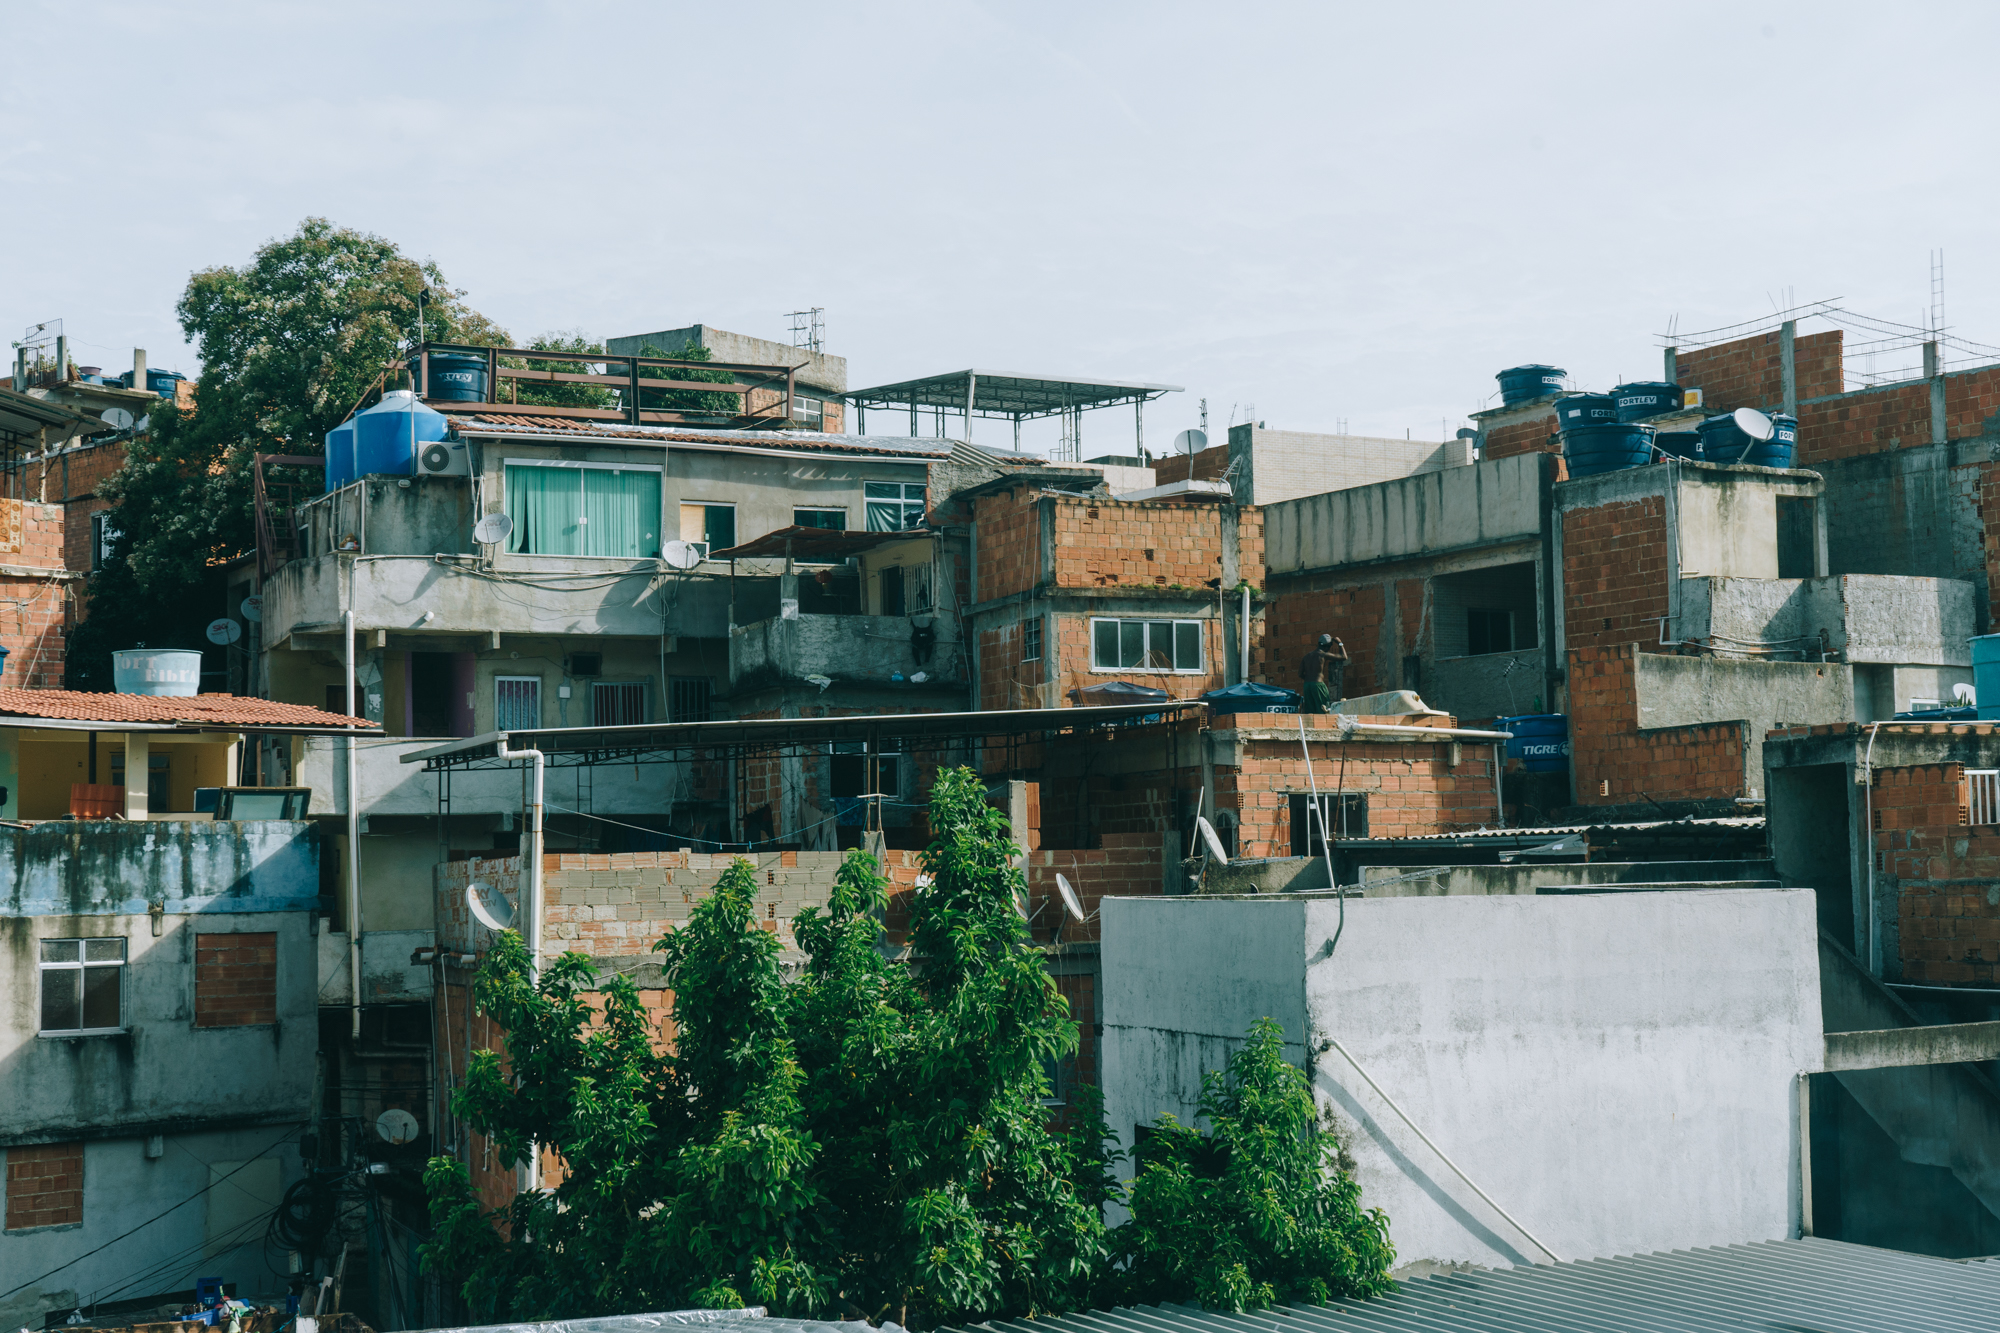 House in the Favela